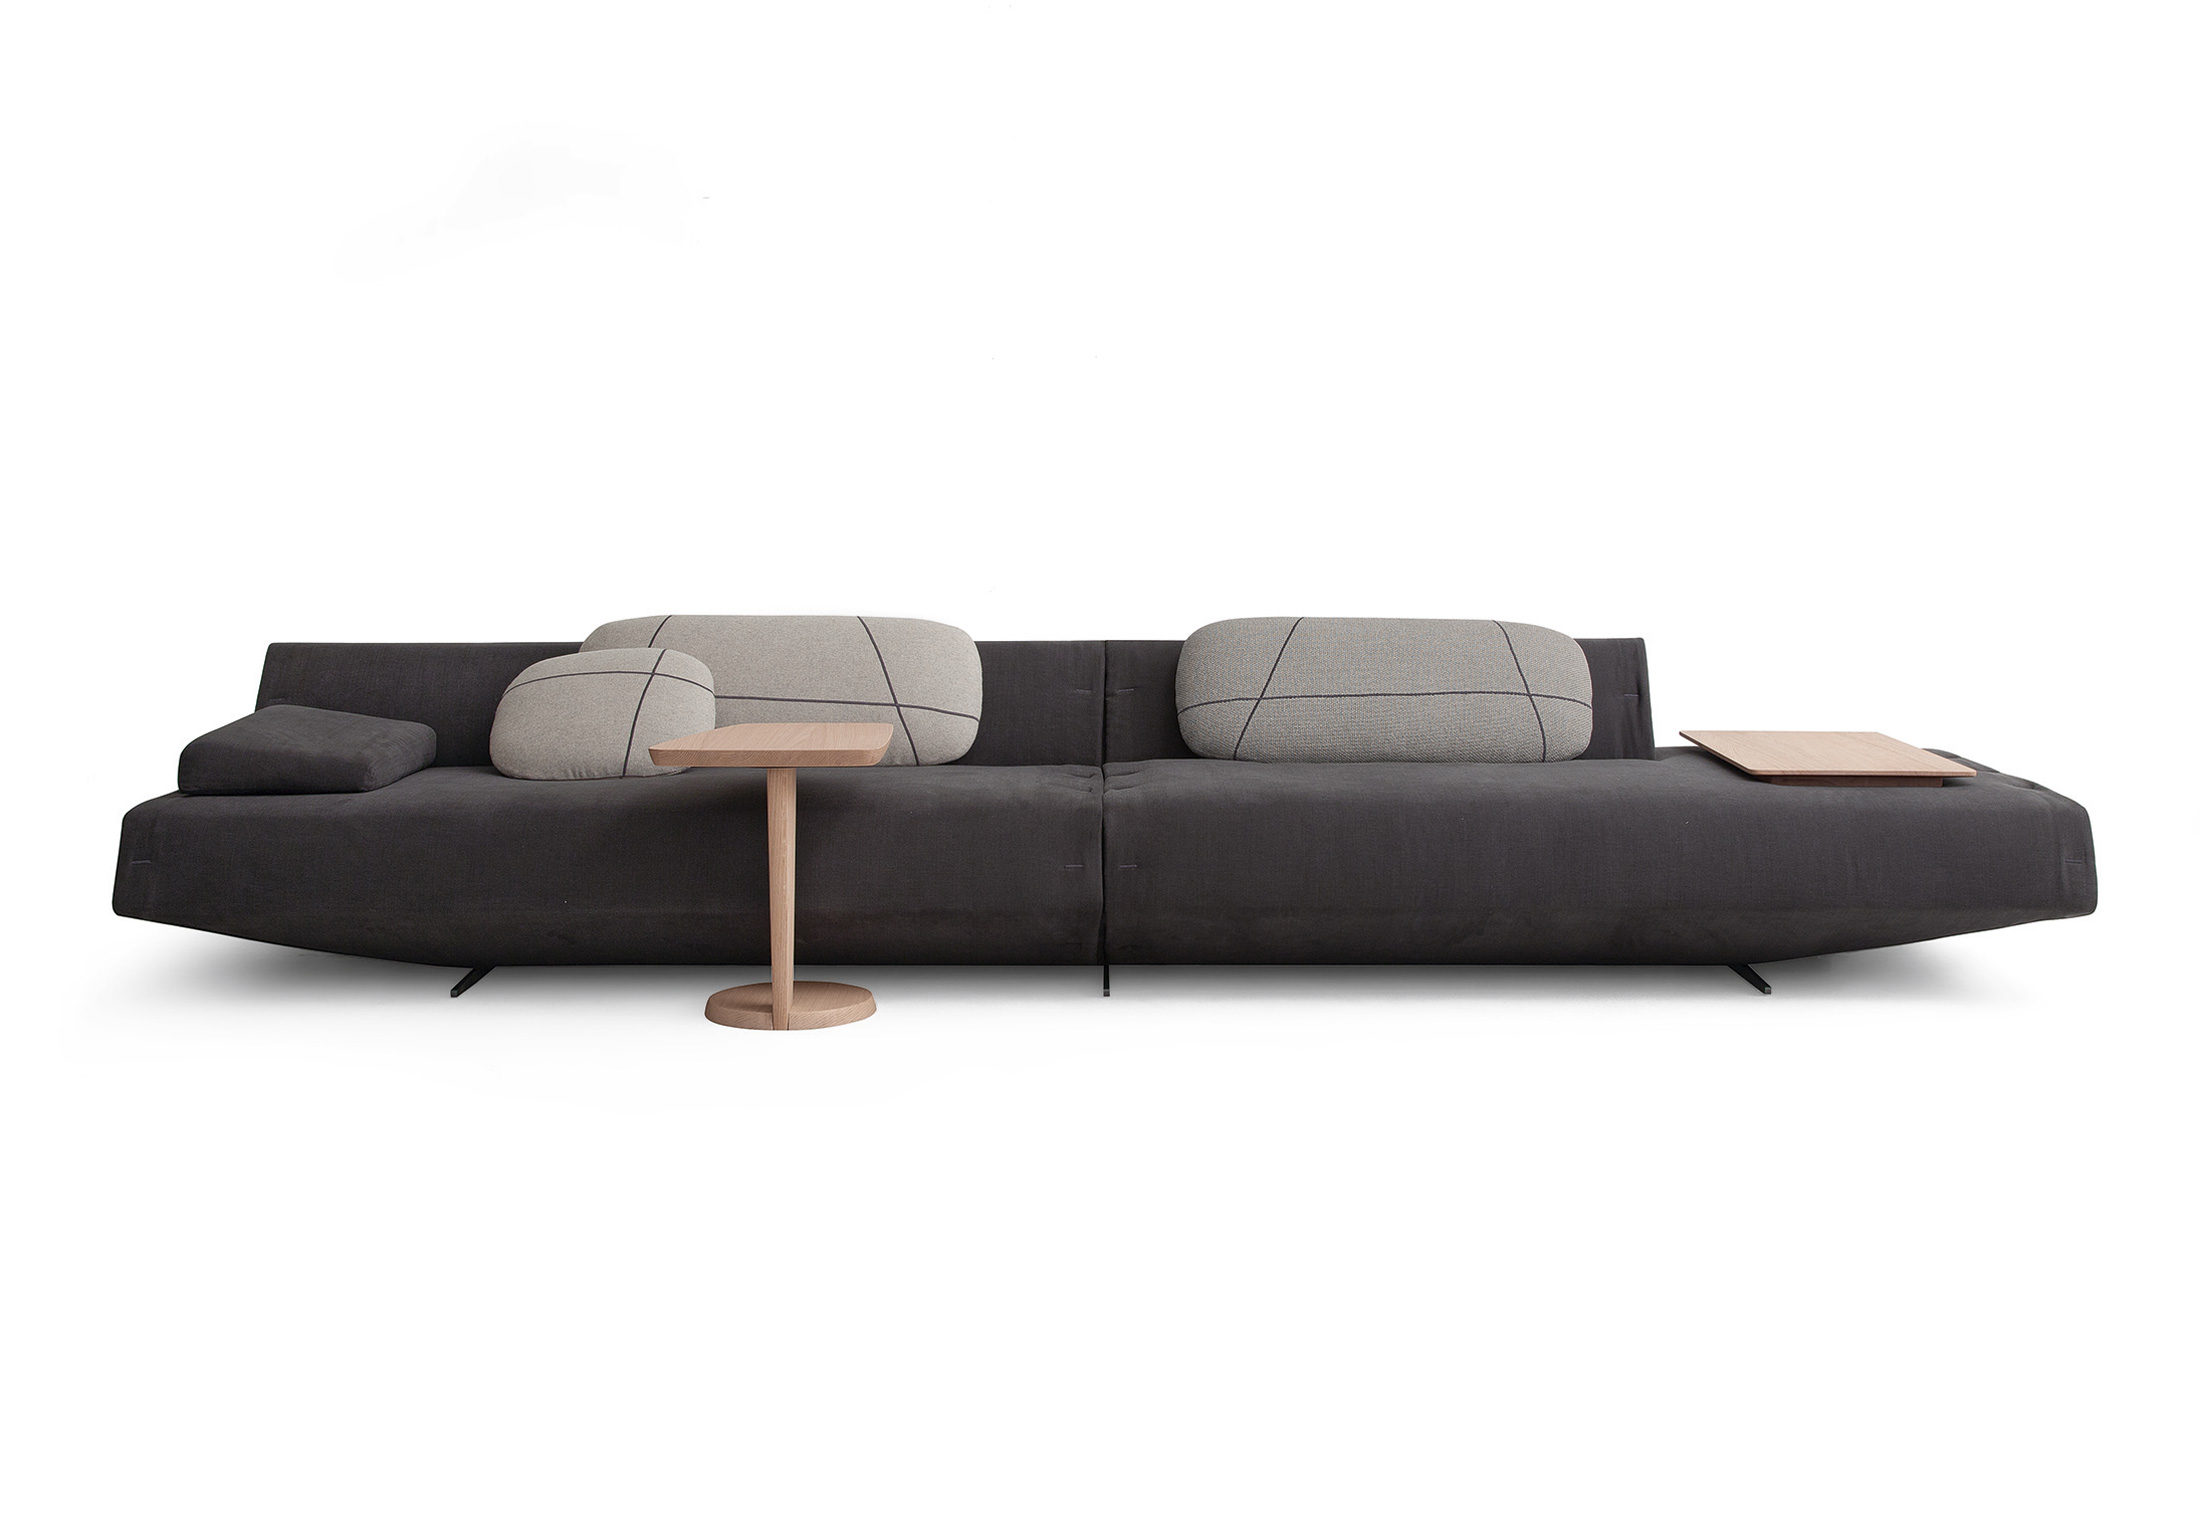 Sydney Sofa By Poliform Stylepark